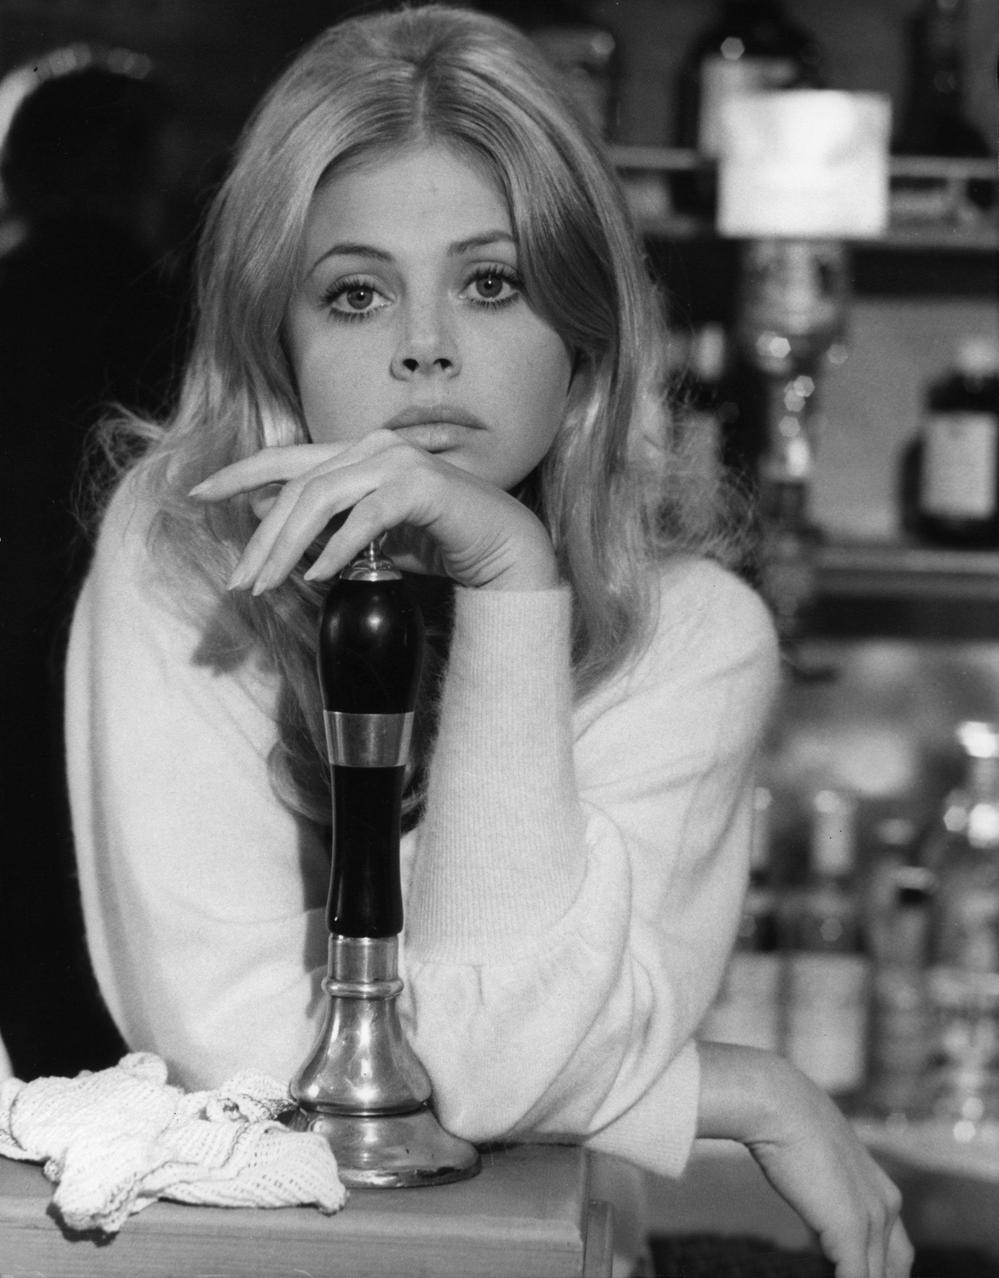 What is Britt Ekland's birthday - answers.com